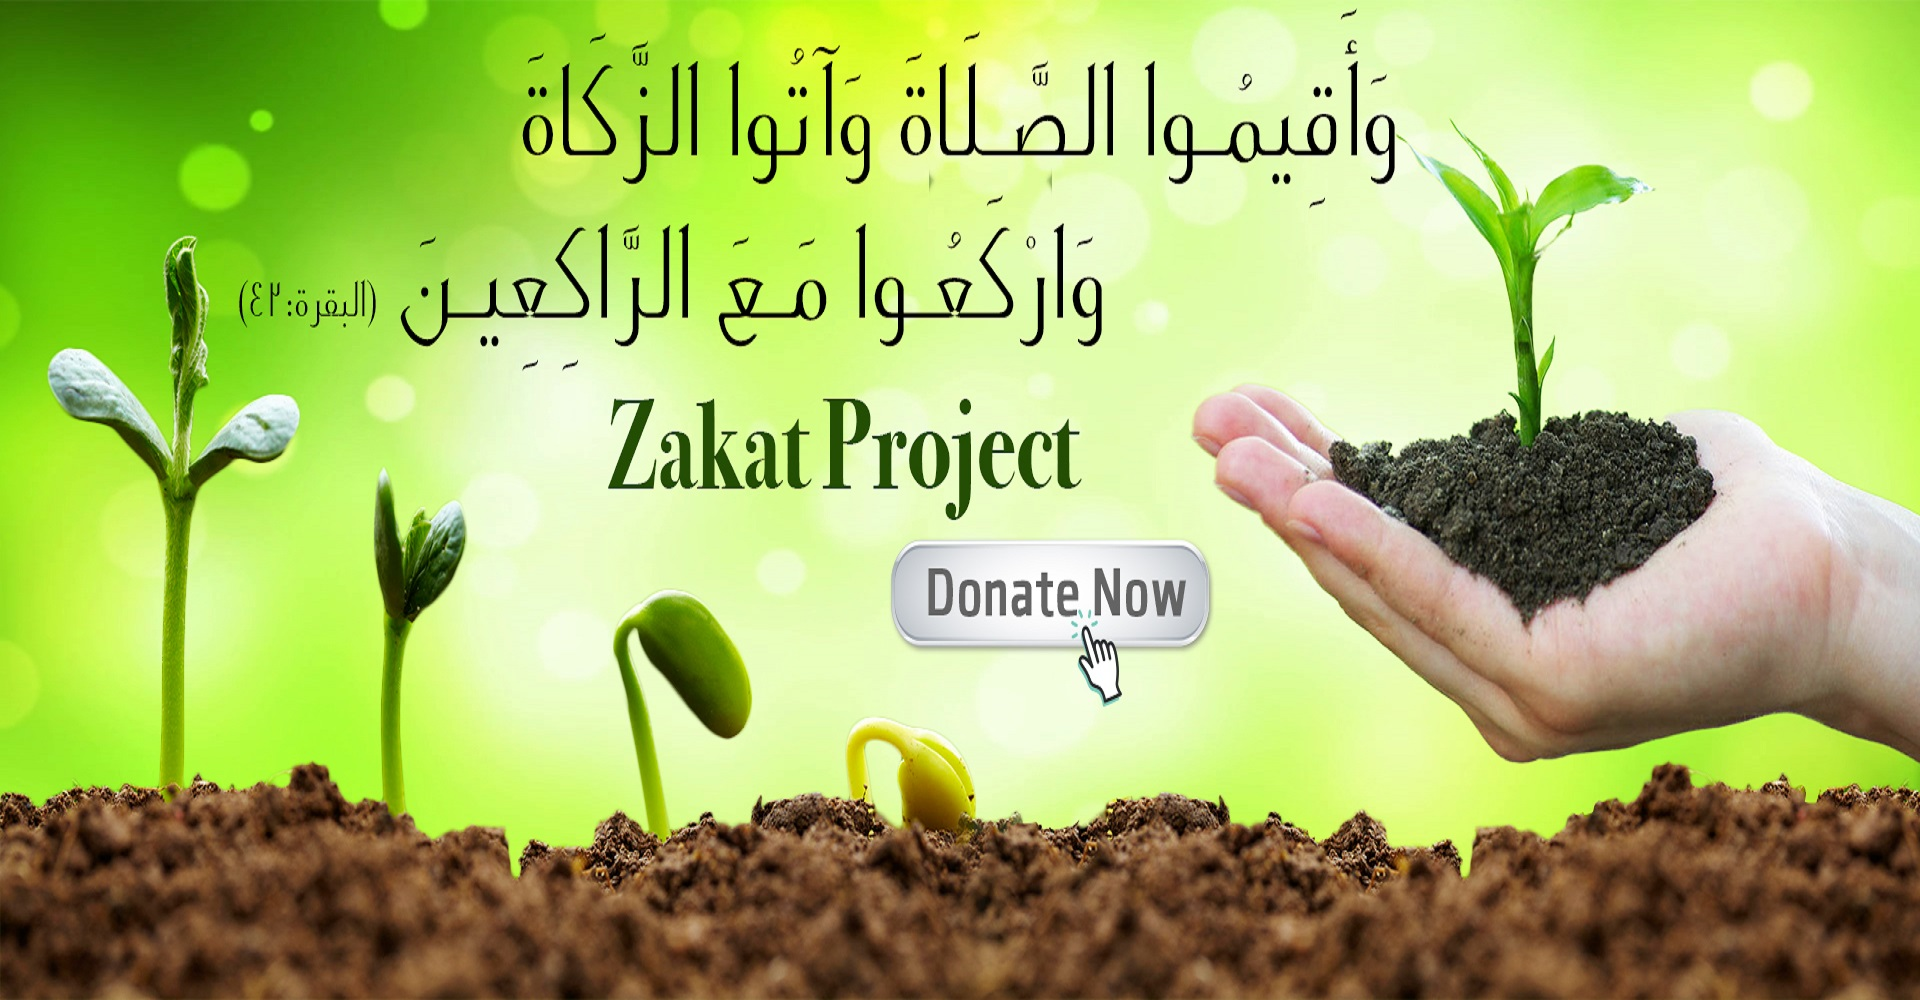 How many  the payment of Zakah  ? zakat calculator, zakat rules,who is eligible for zakat,sadaqah, definition of charitycharity water, and quranmualim. Learn Quran, Quran translation, Quran mp3,quran explorer, Quran  download, Quran translation in Urdu English to Arabic, Al Mualim, Quranmualim, Vislam pictures, Islam symbol, Shia Islam, Sunni Islam, Islam facts],Islam beliefs and practices Islam religion history, Islam guide, prophet Muhammad quotes, prophet Muhammad biography, Prophet Muhammad family tree.